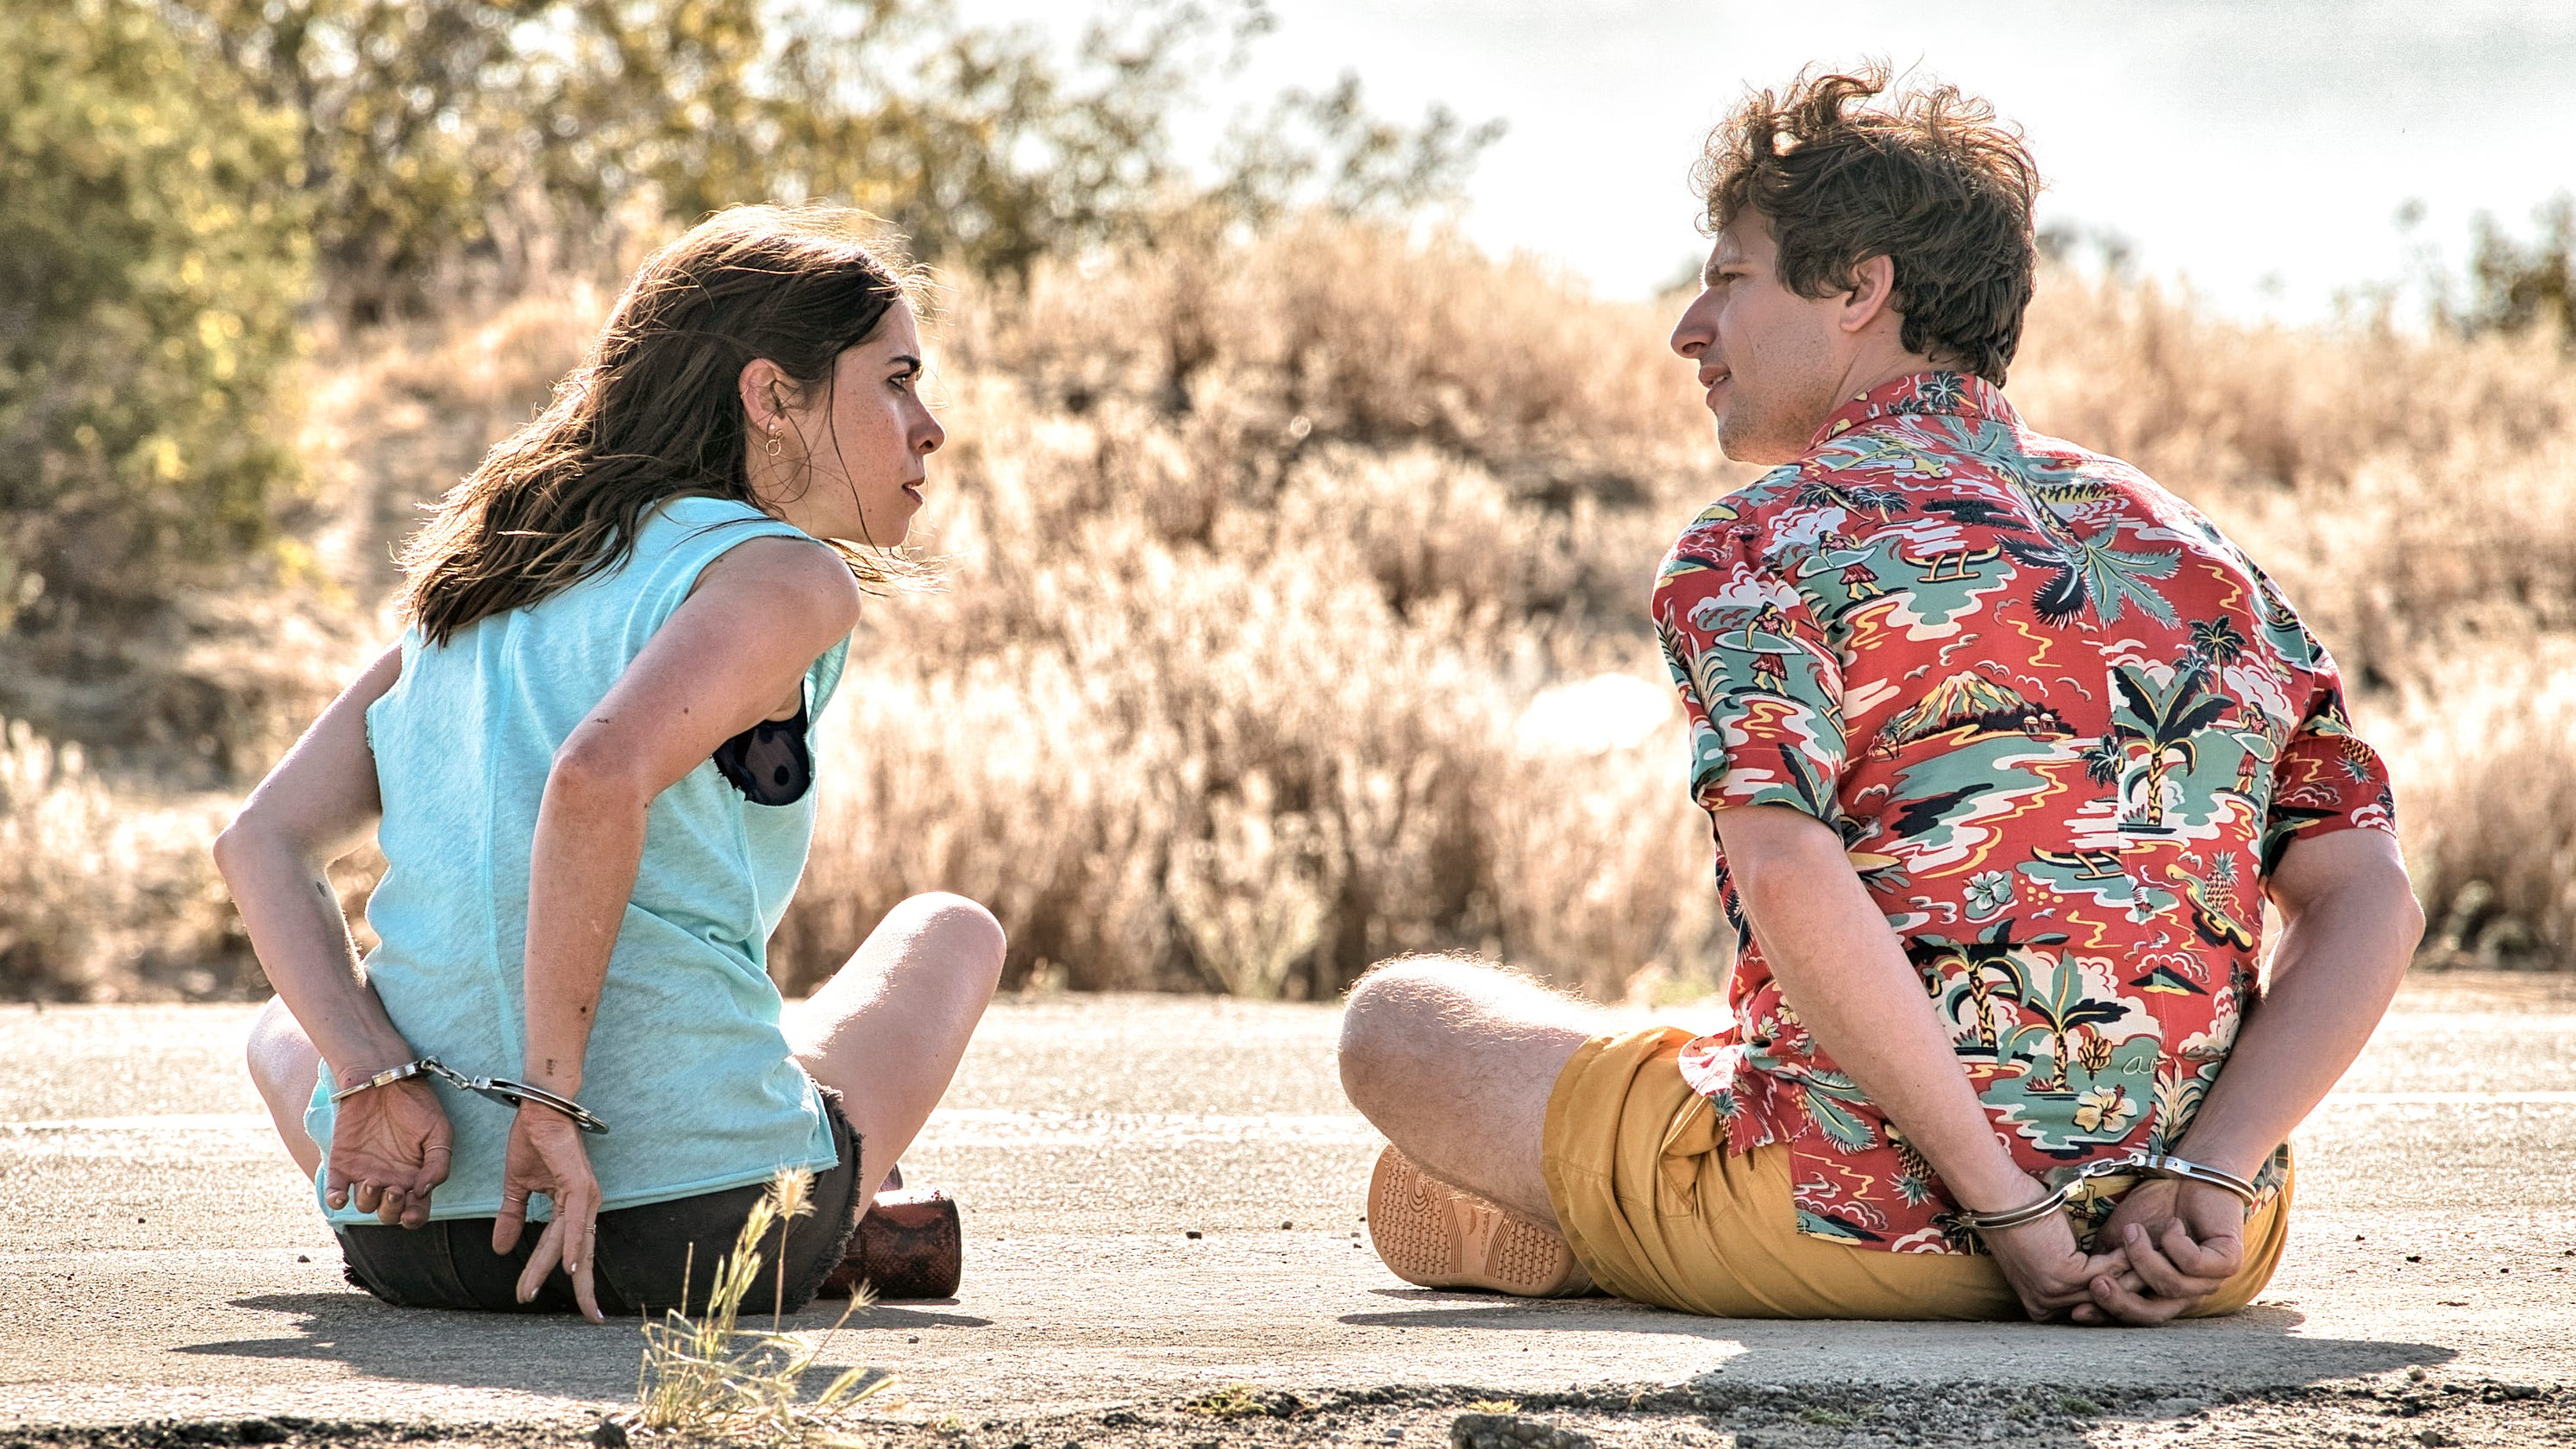 Andy Samberg film 'Palm Springs' to premiere July 10 on Hulu, at ...